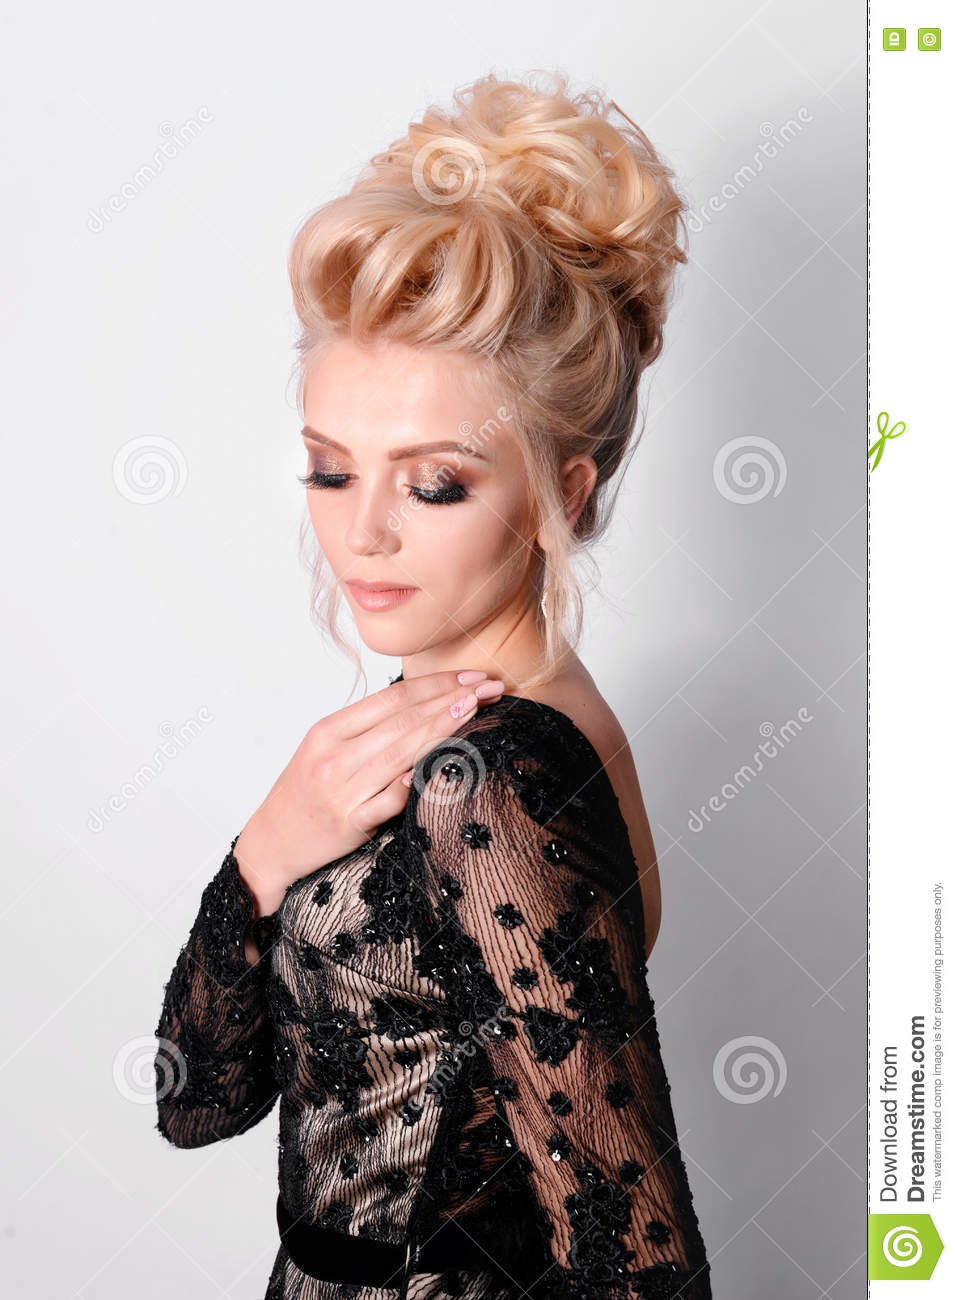 beautiful lady in elegant black evening dress with updo hairstyle